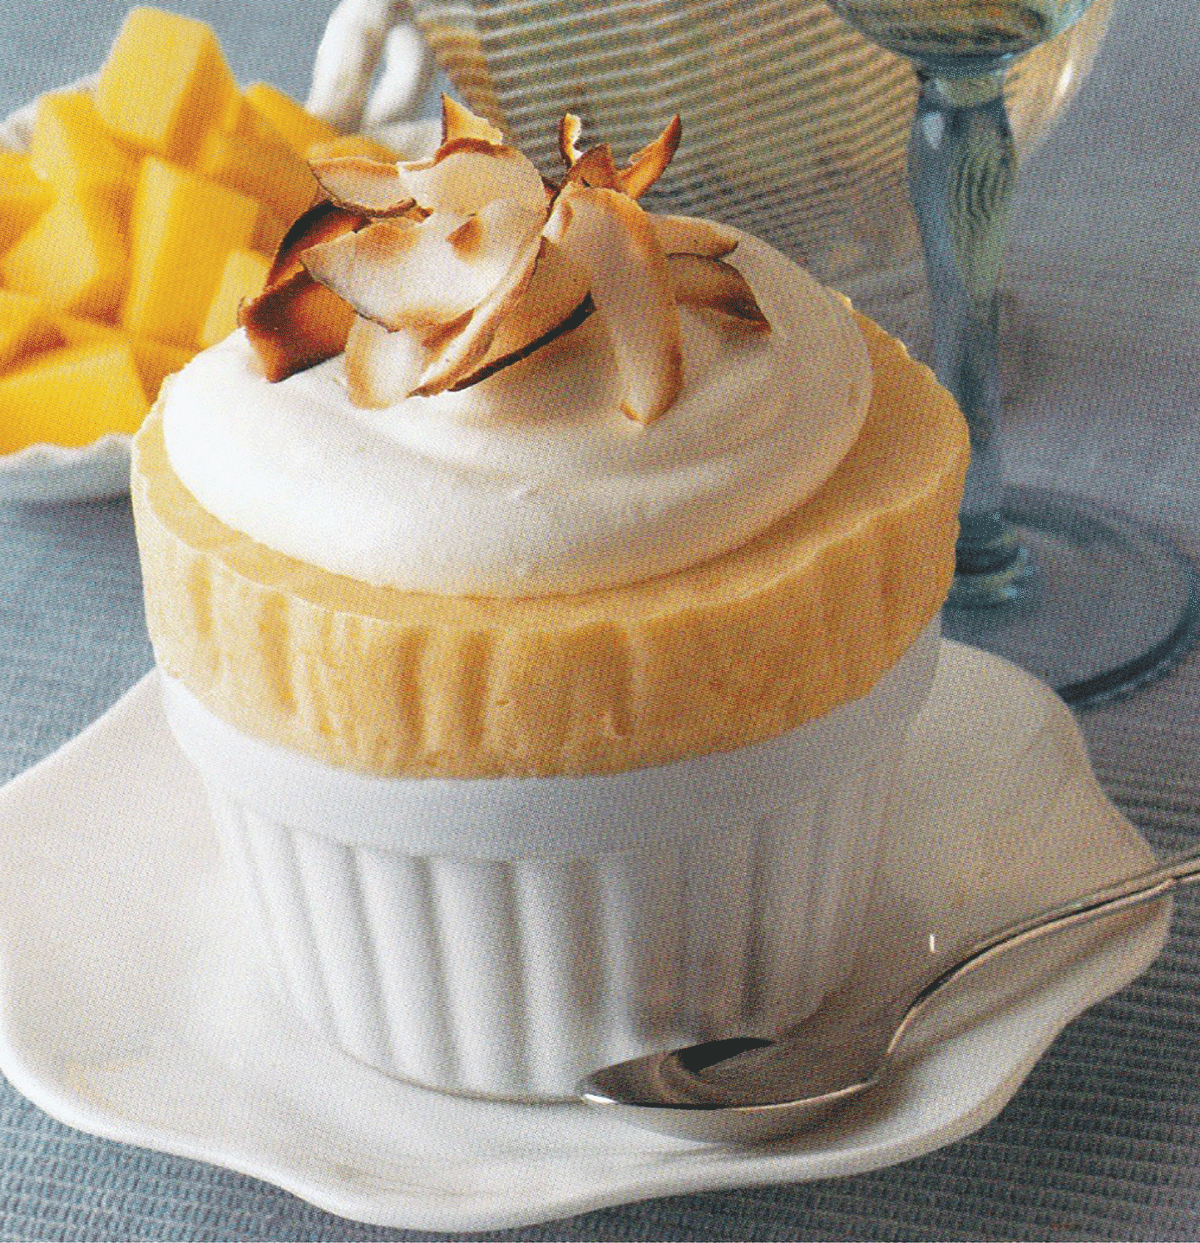 Surprise Mom with a special soufflé